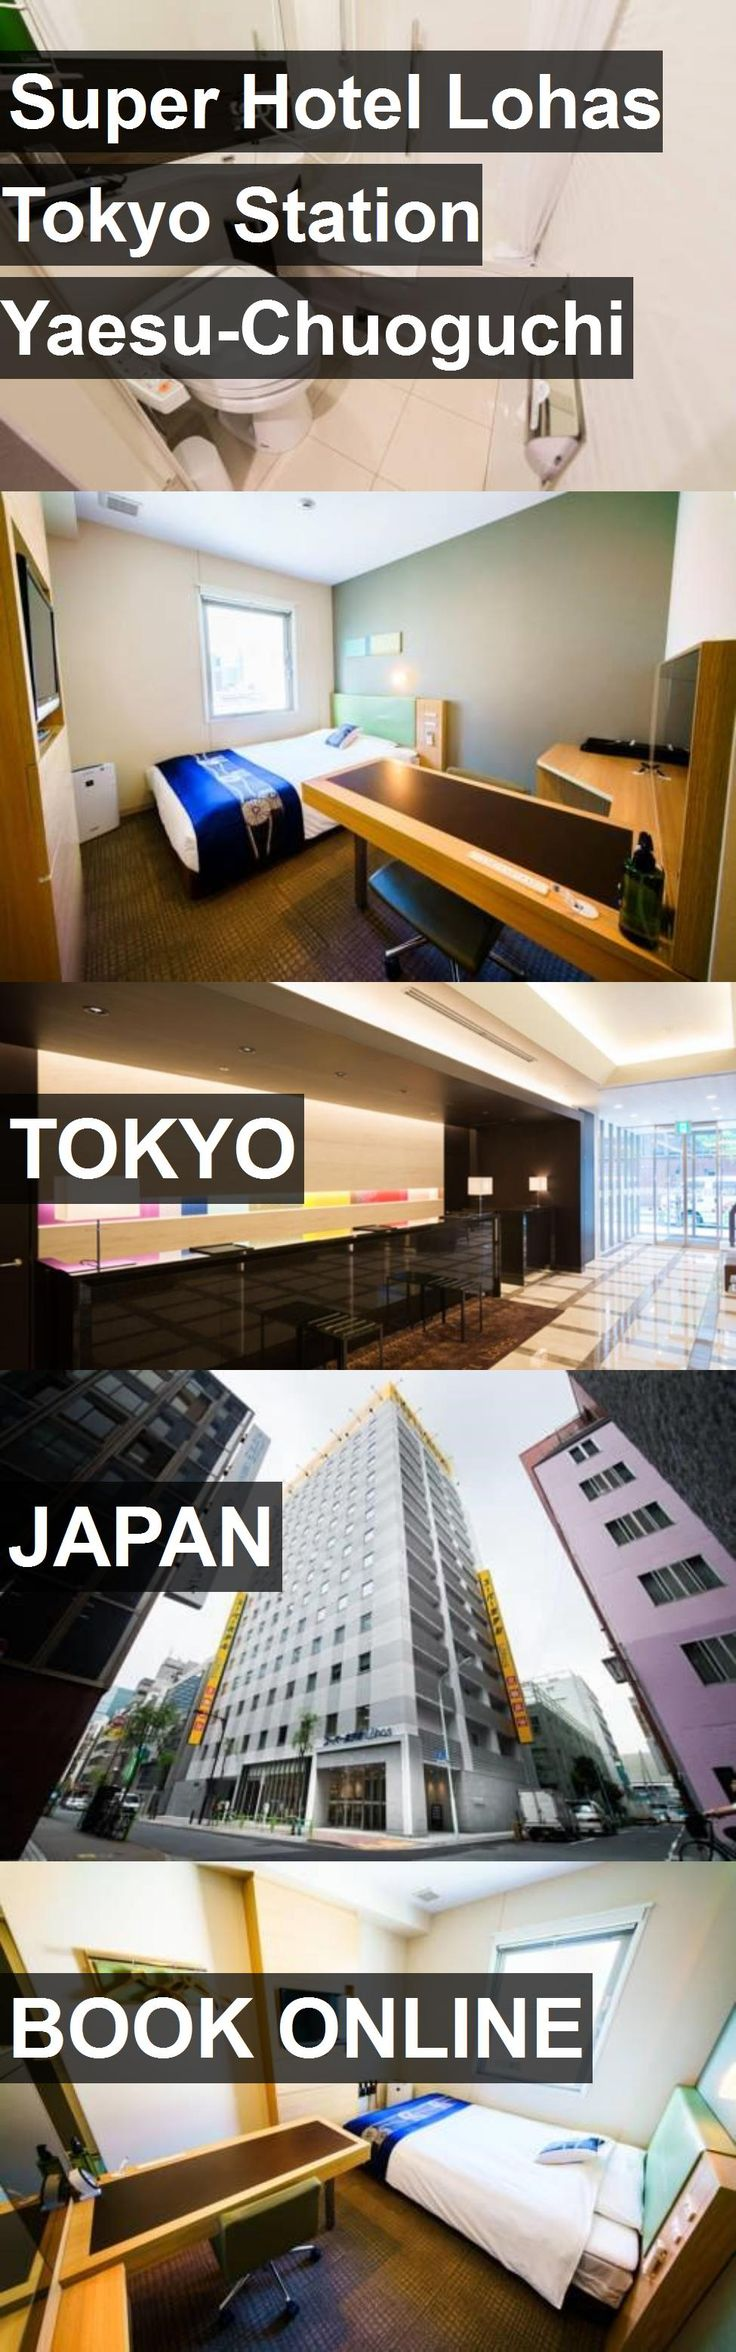 Hotel Super Hotel Lohas Tokyo Station Yaesu-Chuoguchi in Tokyo, Japan. For more information, photos, reviews and best prices please follow the link. #Japan #Tokyo #SuperHotelLohasTokyoStationYaesu-Chuoguchi #hotel #travel #vacation